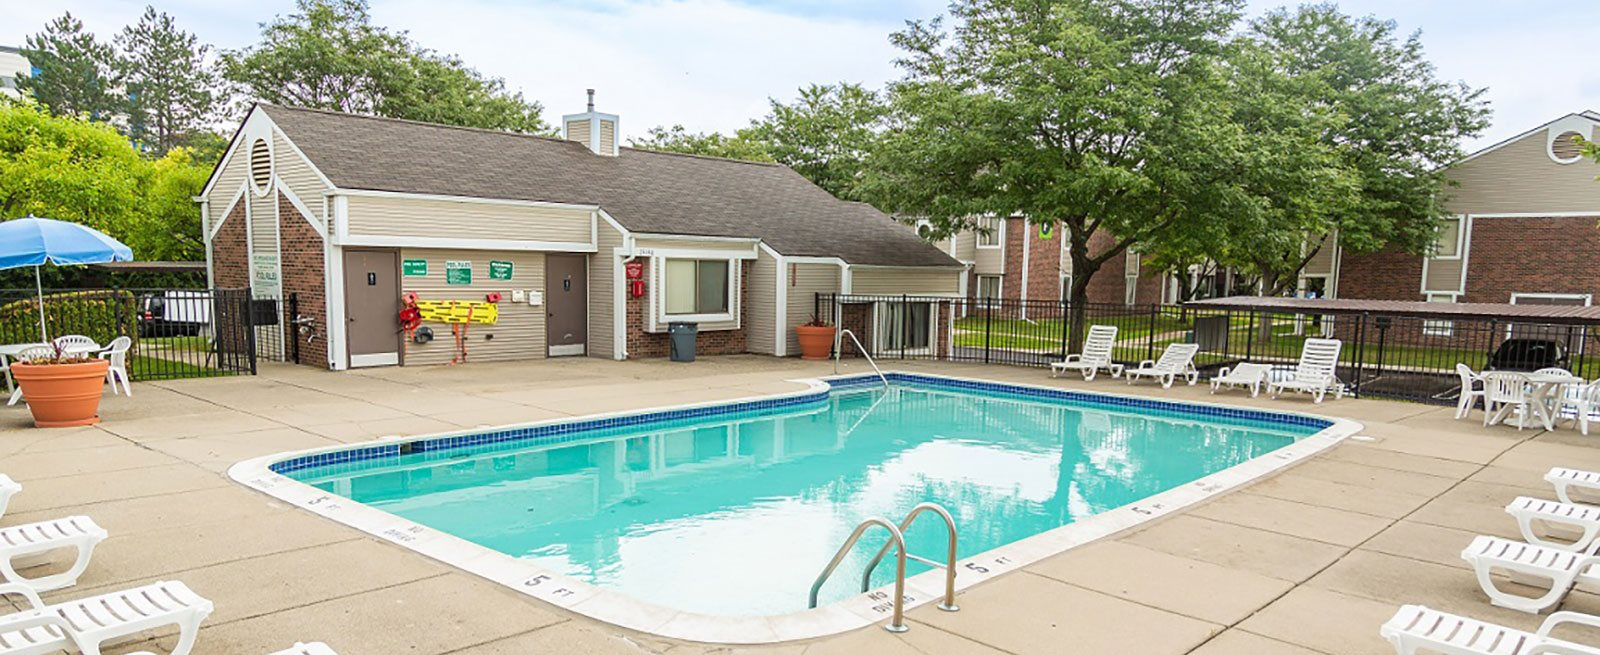 Sparkling Swimming Pool at Park Lane Apartments, Michigan